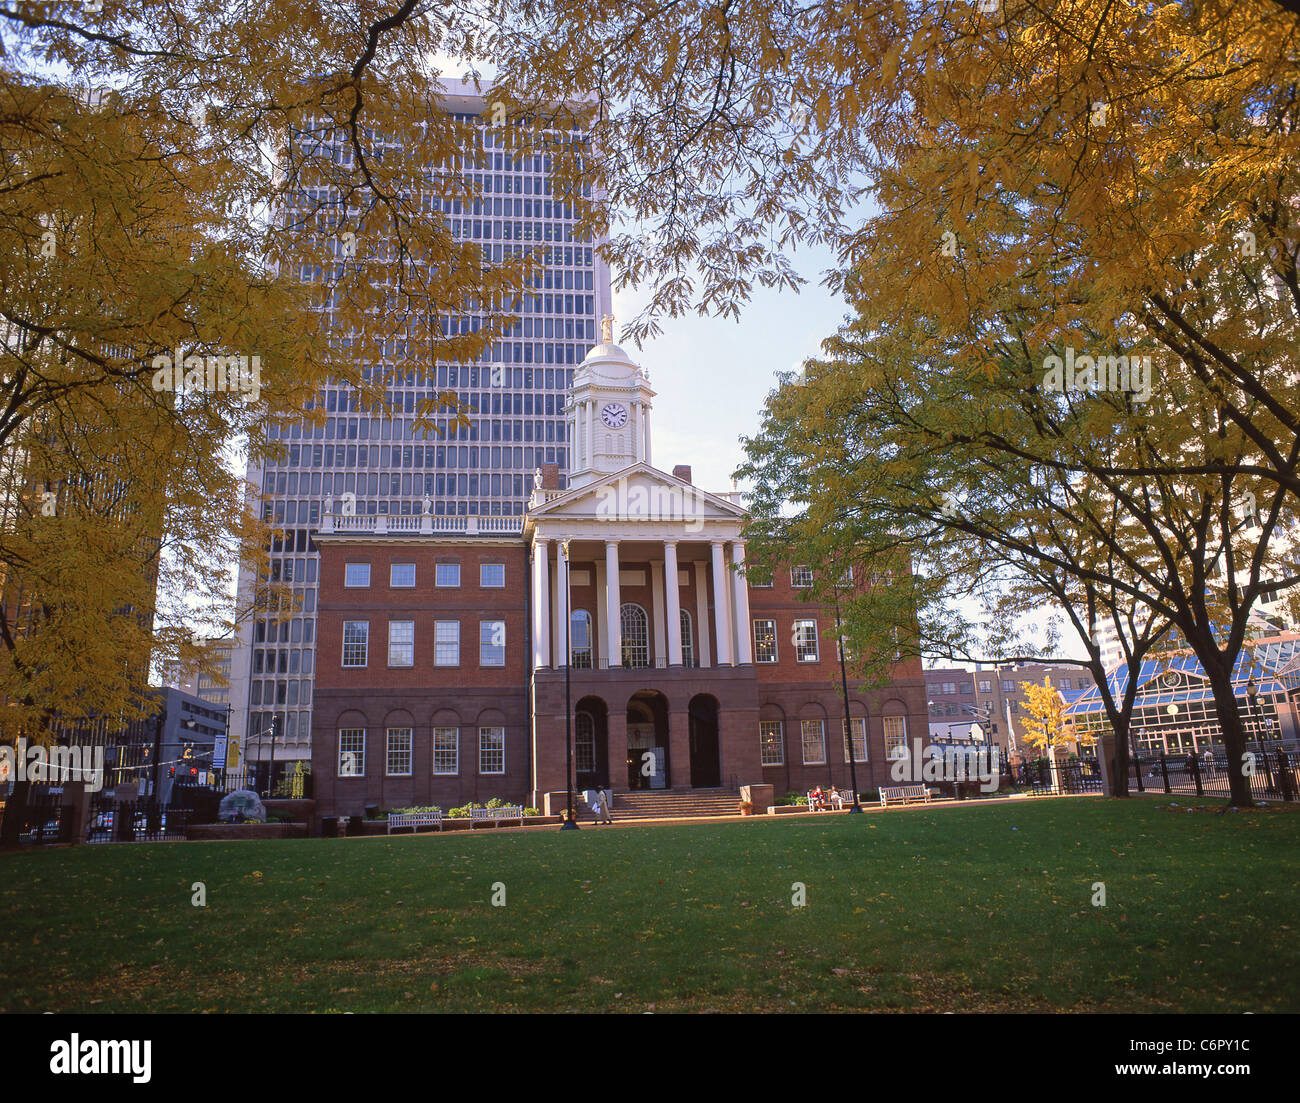 Old State House in fall, Hartford, Connecticut, United States of America Stock Photo